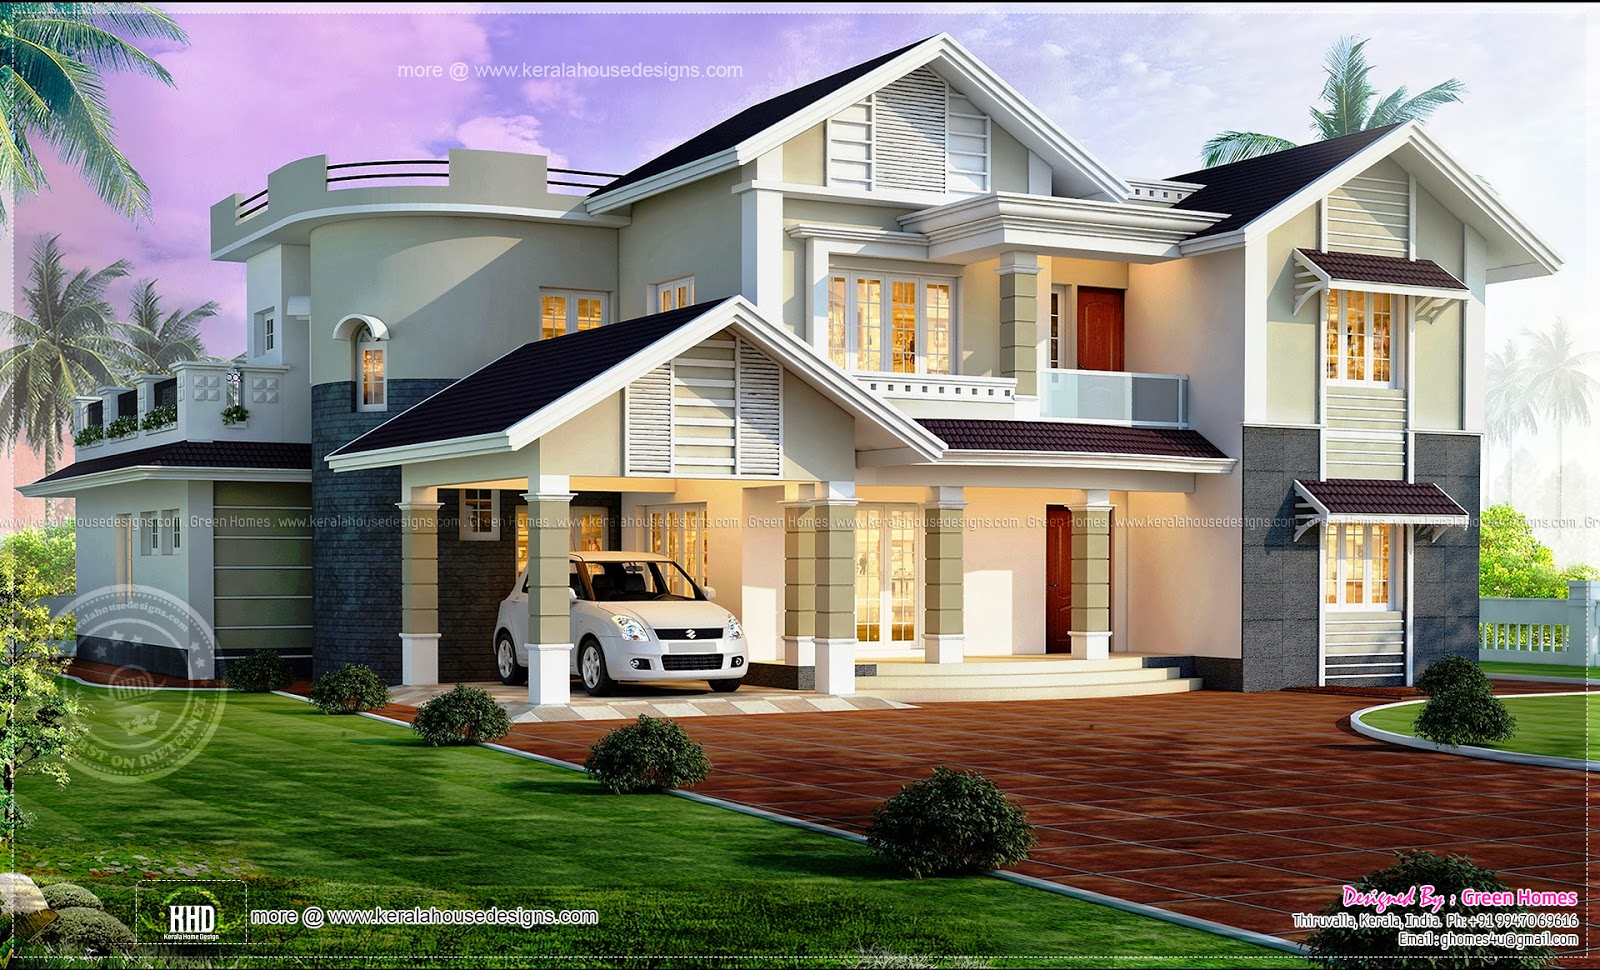 Perfect Kerala Home Design Image designs for new homes awesome 29 new homes styles design new home designs bedroom kitchen limbago Beautiful Home Design